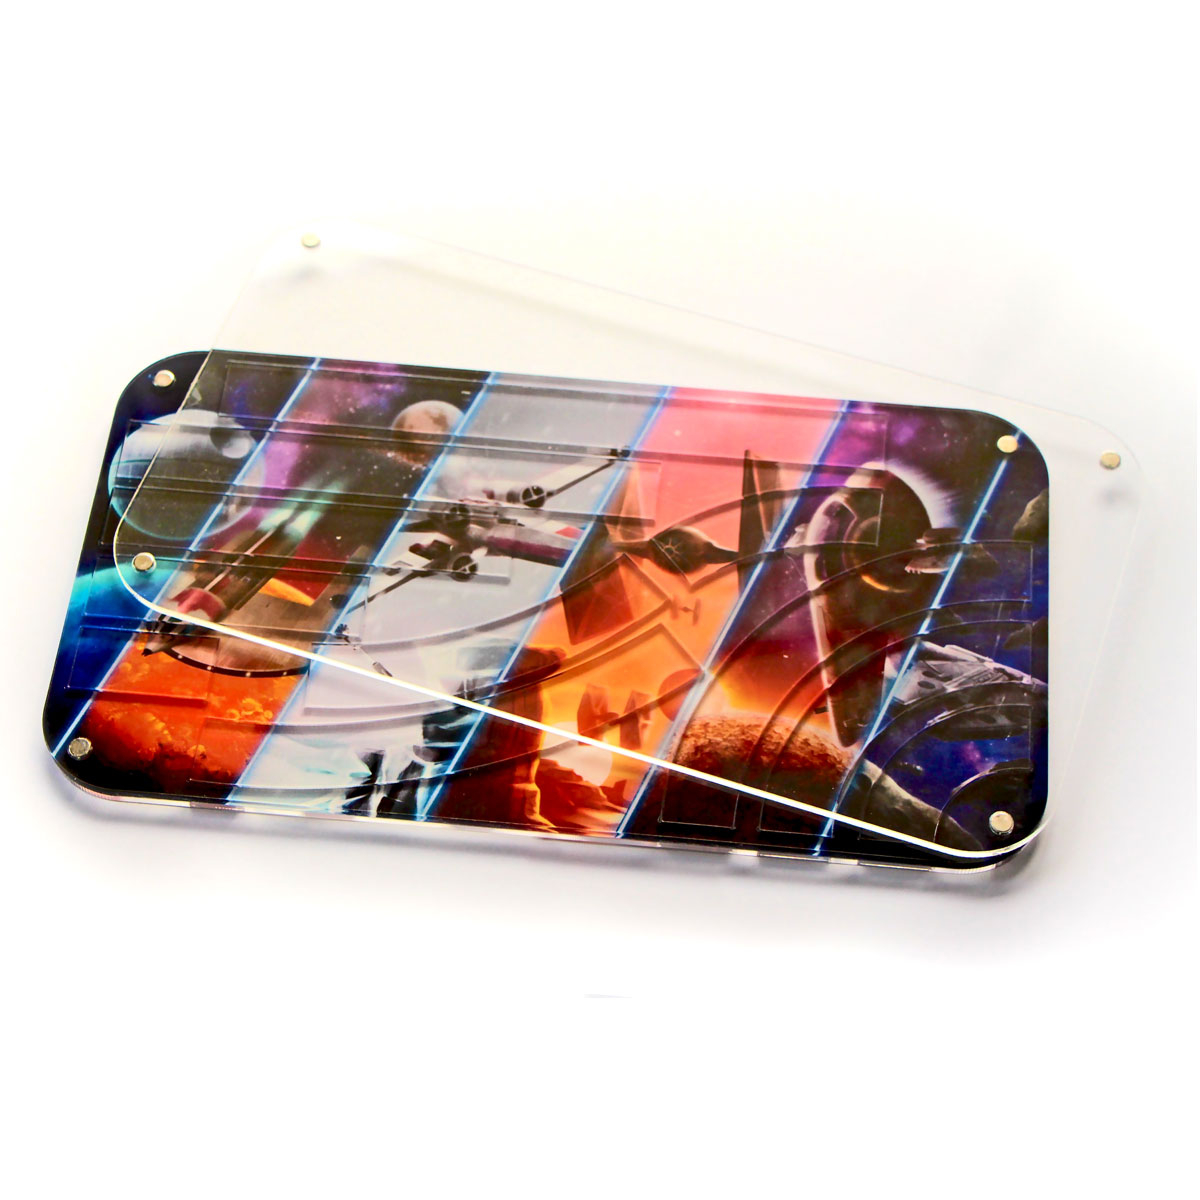 Star Wars X-Wing Compatible Template Tray V 2.0